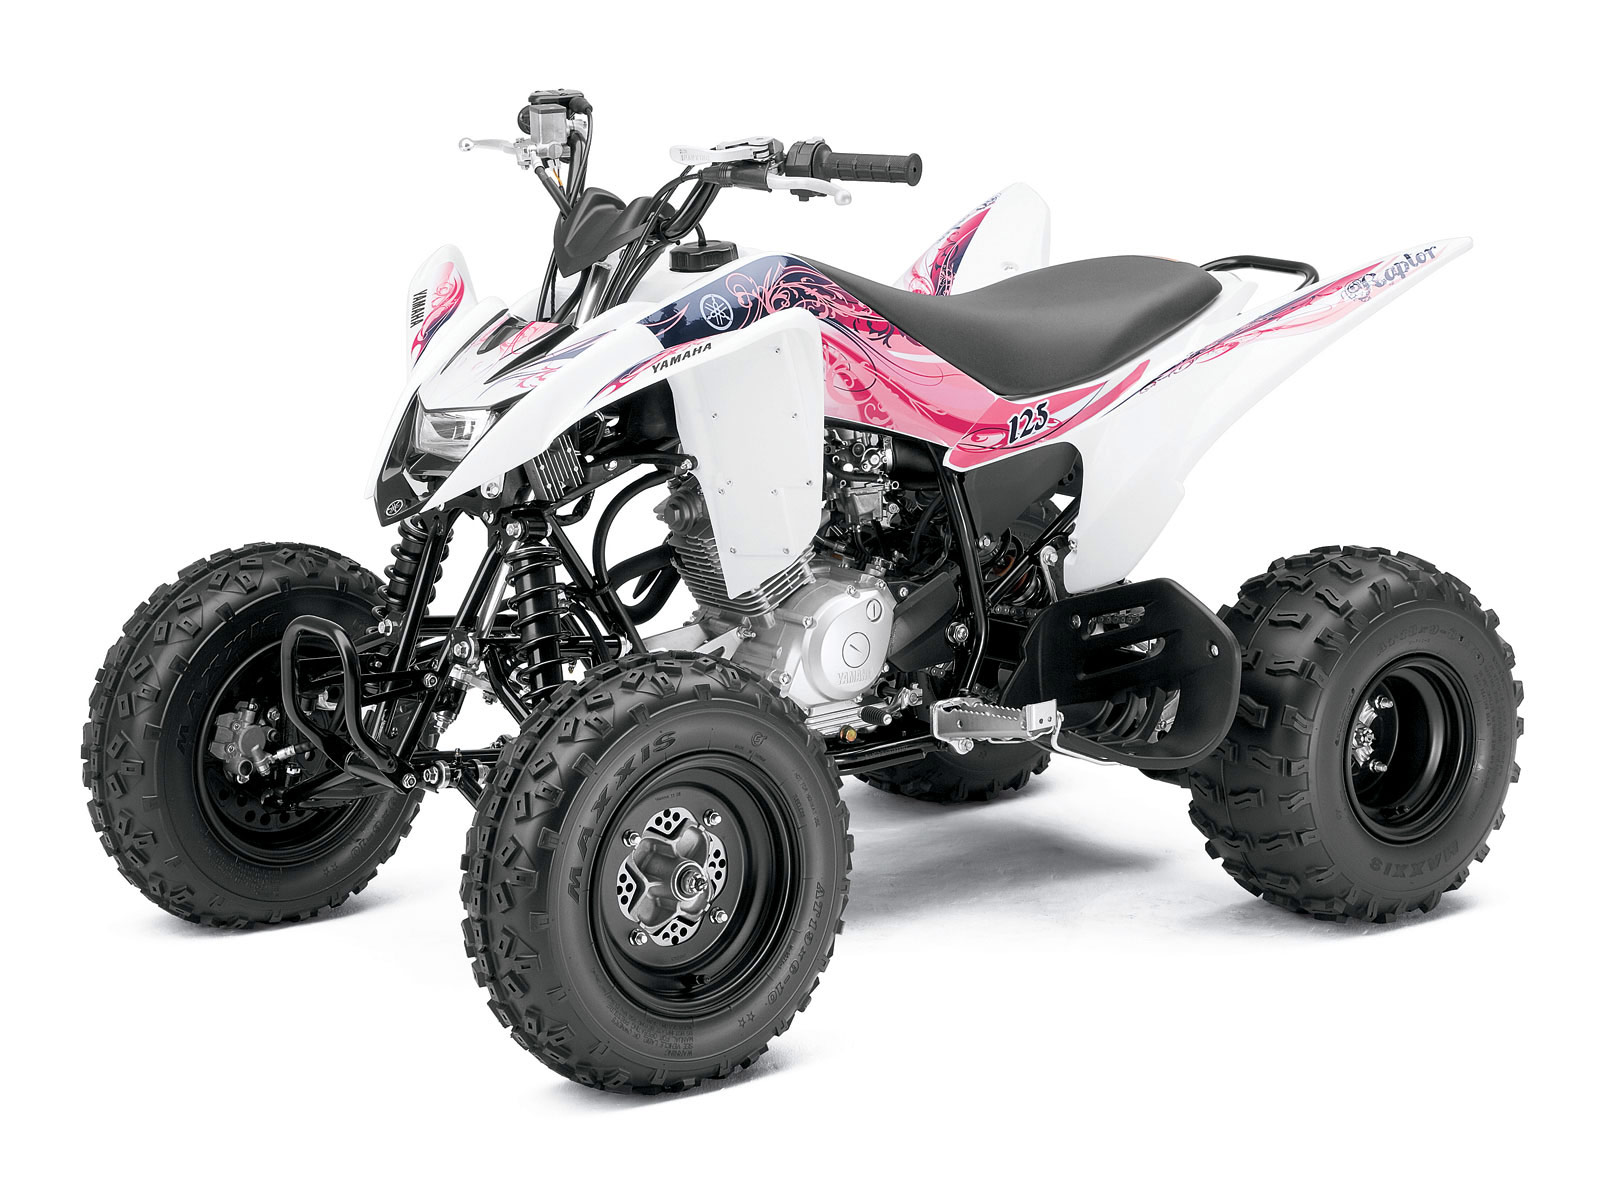 ATV Wallpapers 2011 YAMAHA Raptor 125 specifications 1600x1200